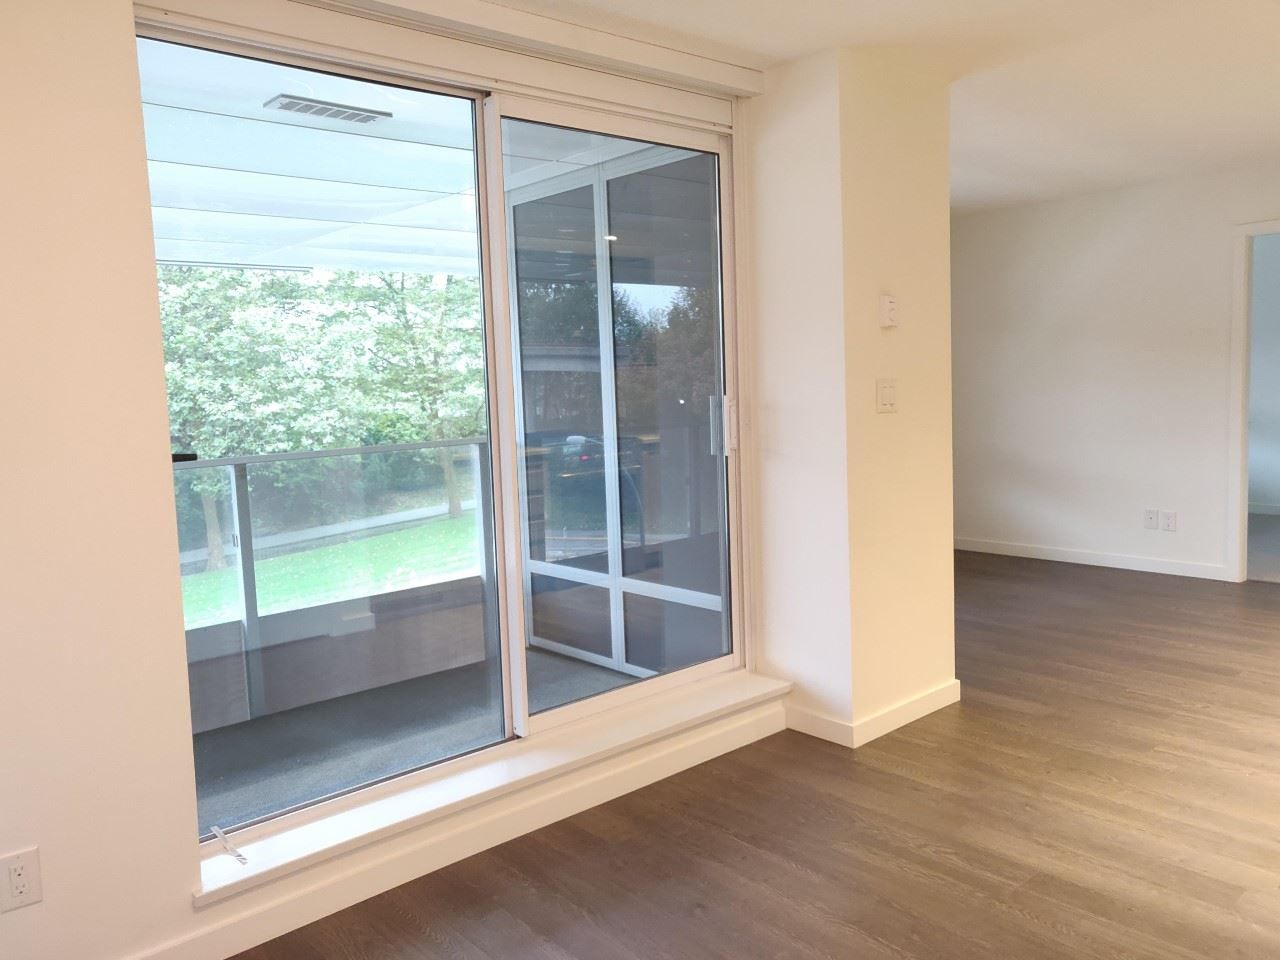 """Photo 5: Photos: 205 5515 BOUNDARY Road in Vancouver: Collingwood VE Condo for sale in """"WALL CENTER CETNRAL PARK"""" (Vancouver East)  : MLS®# R2516109"""